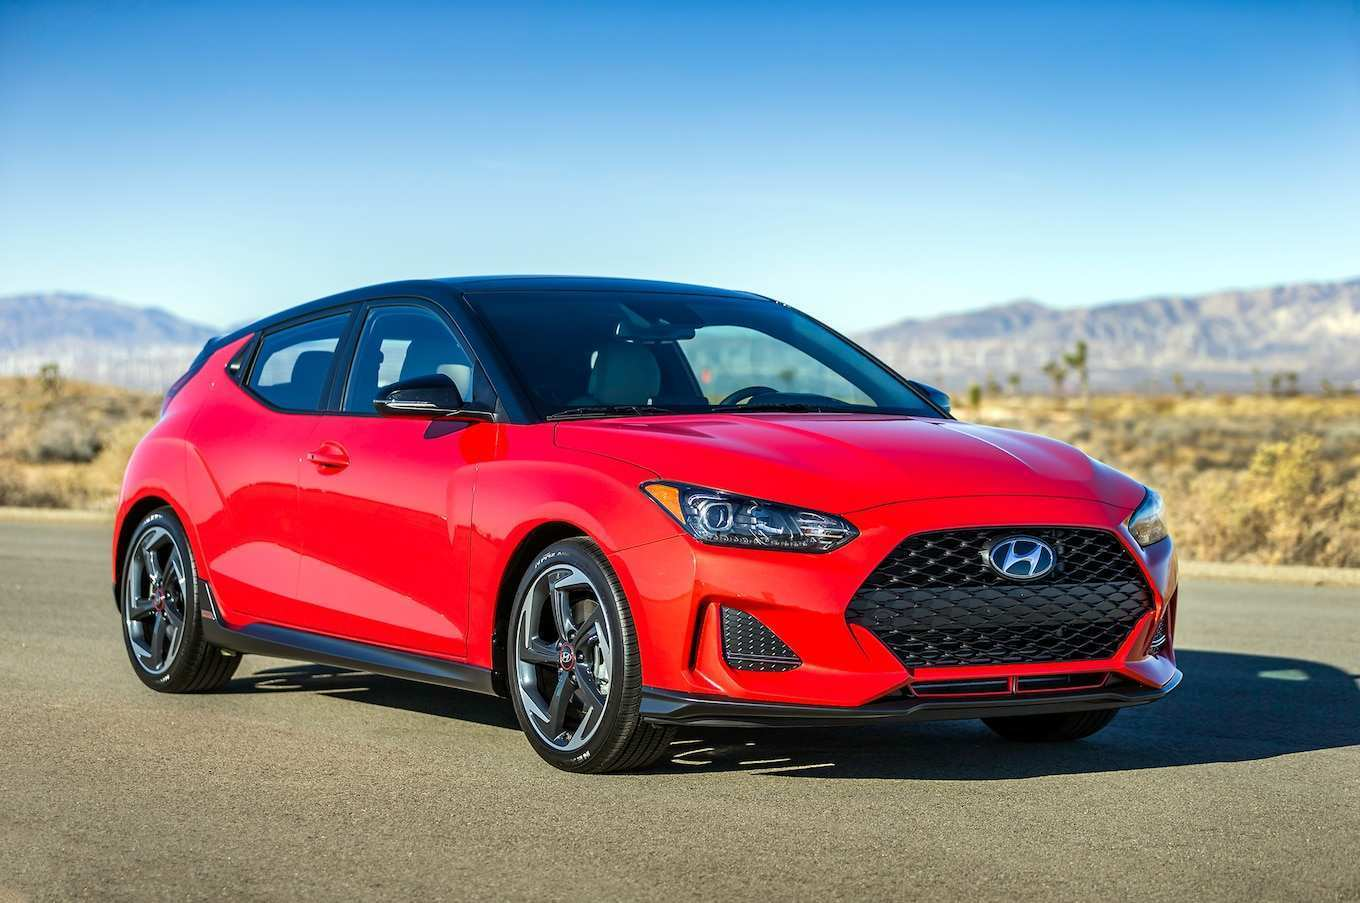 24 All New 2019 Hyundai Veloster Review And Release Date